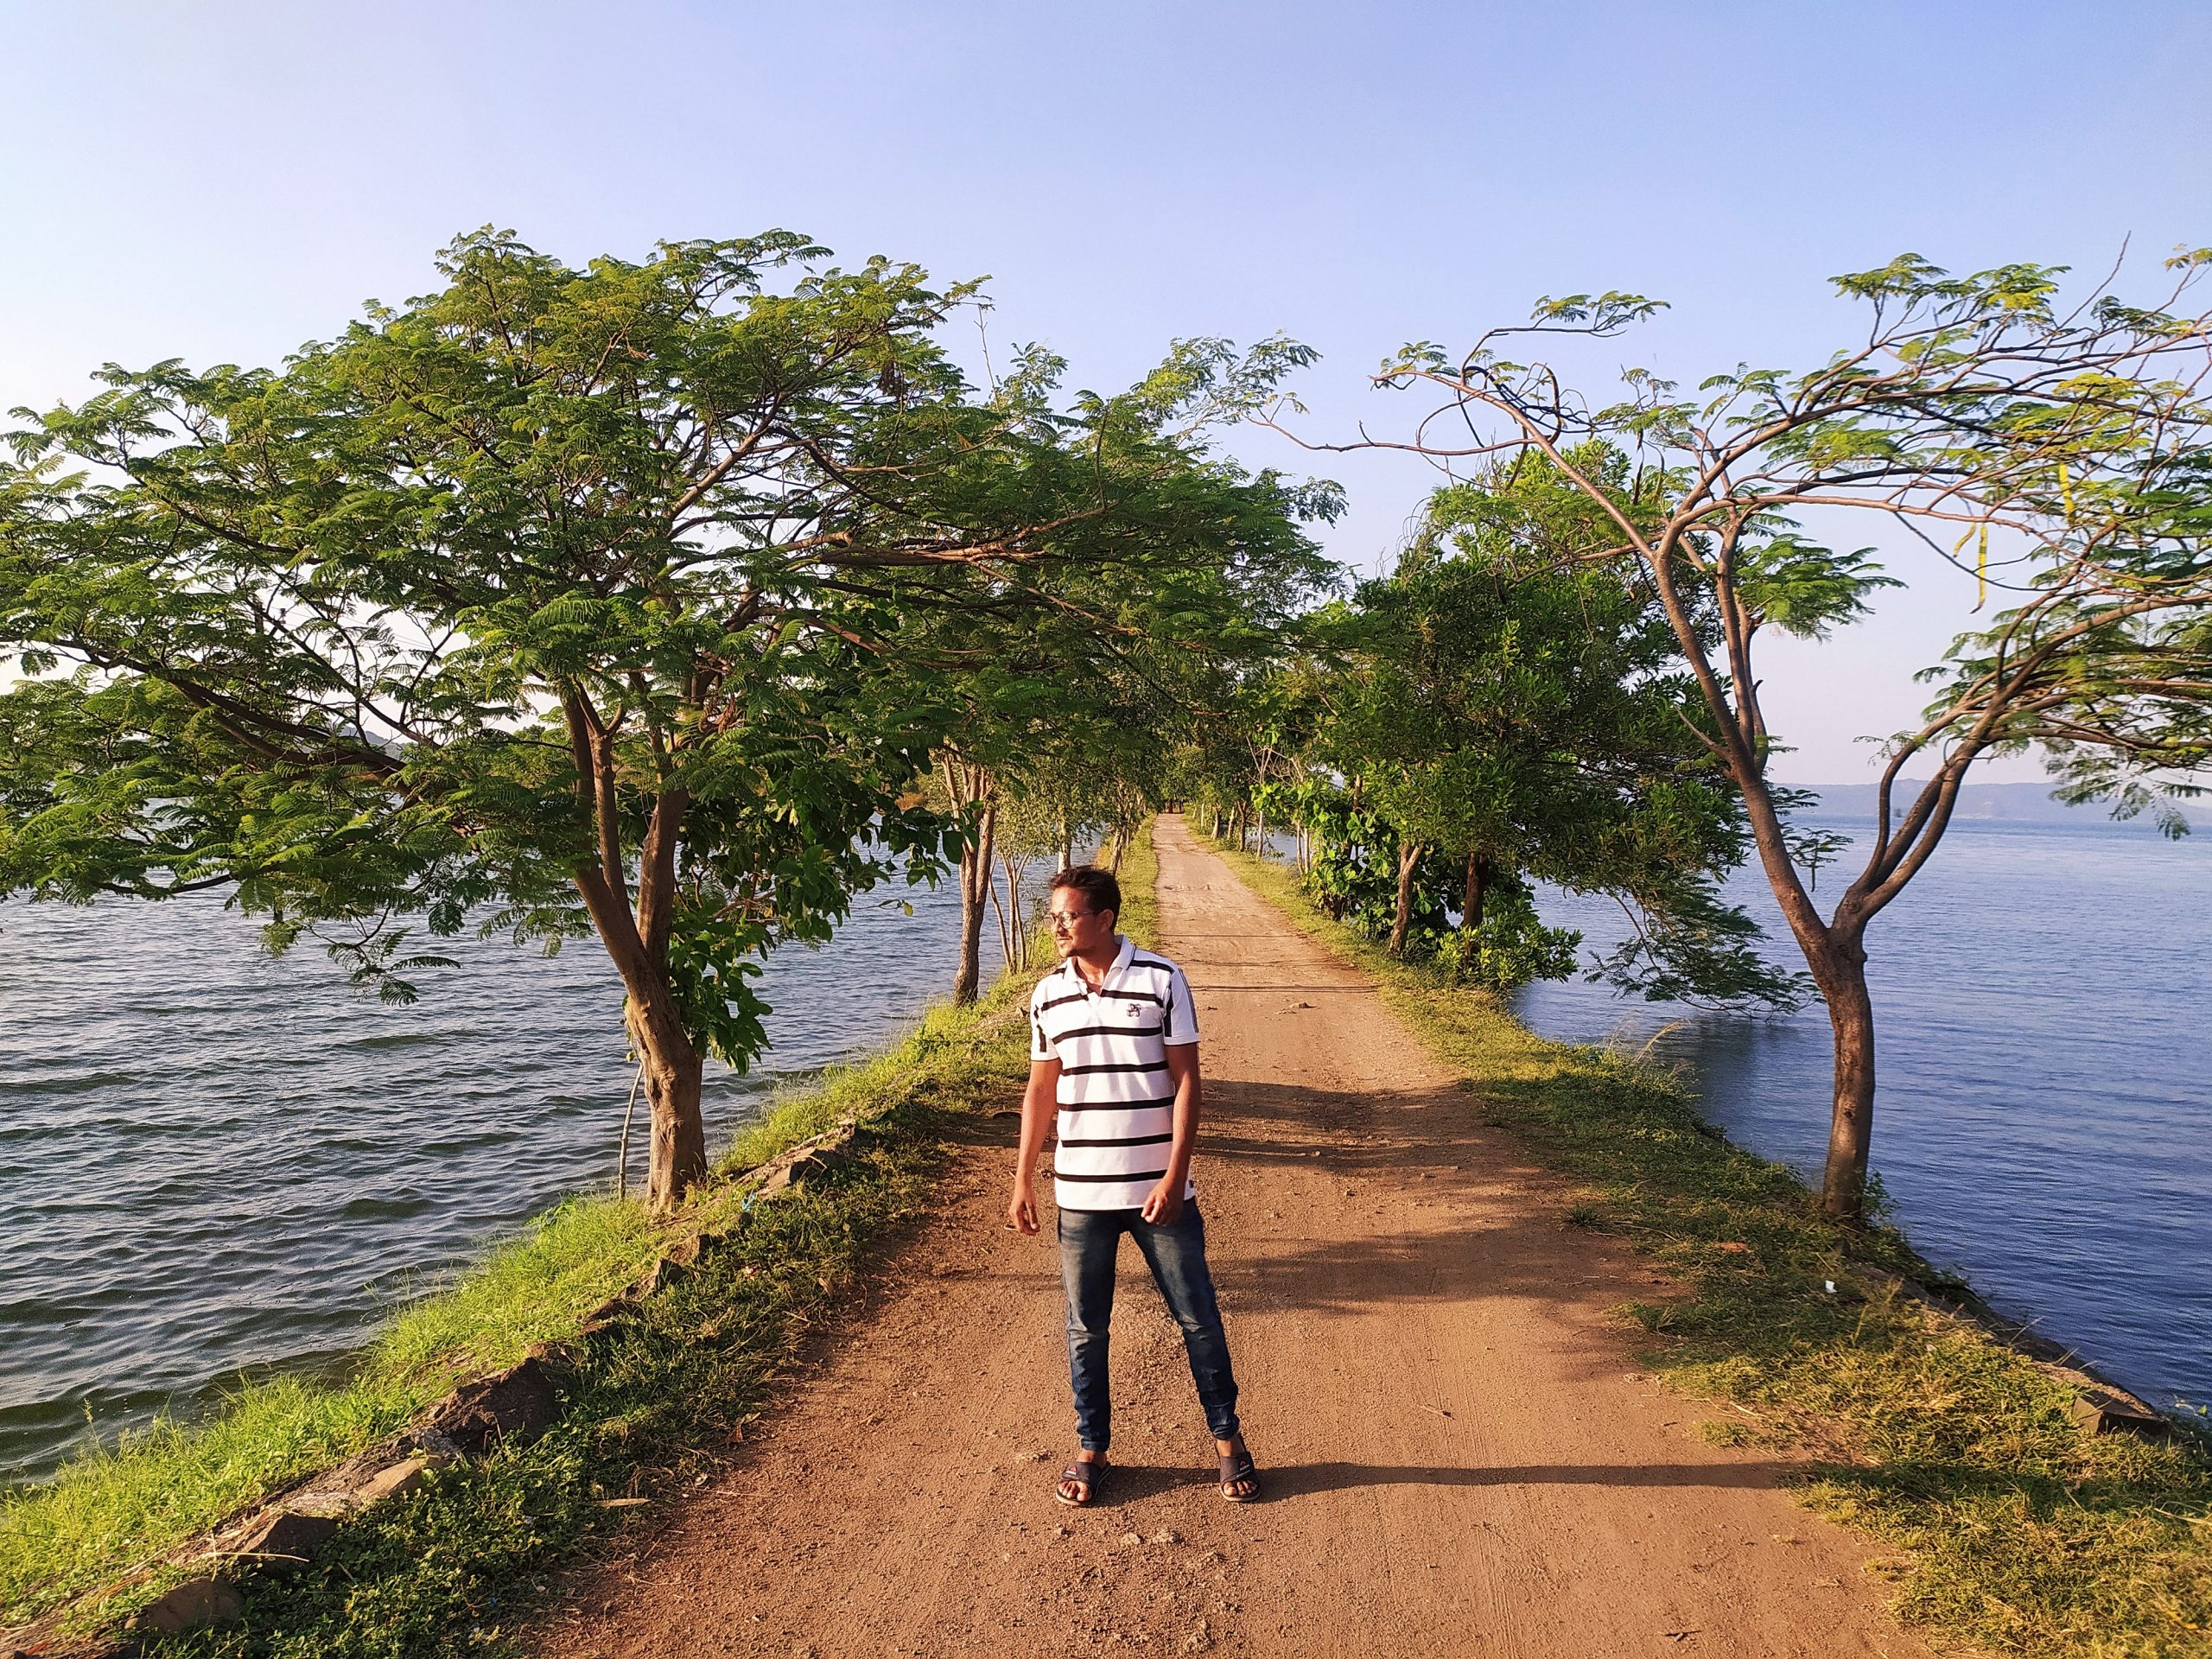 Man standing on the road in a sea